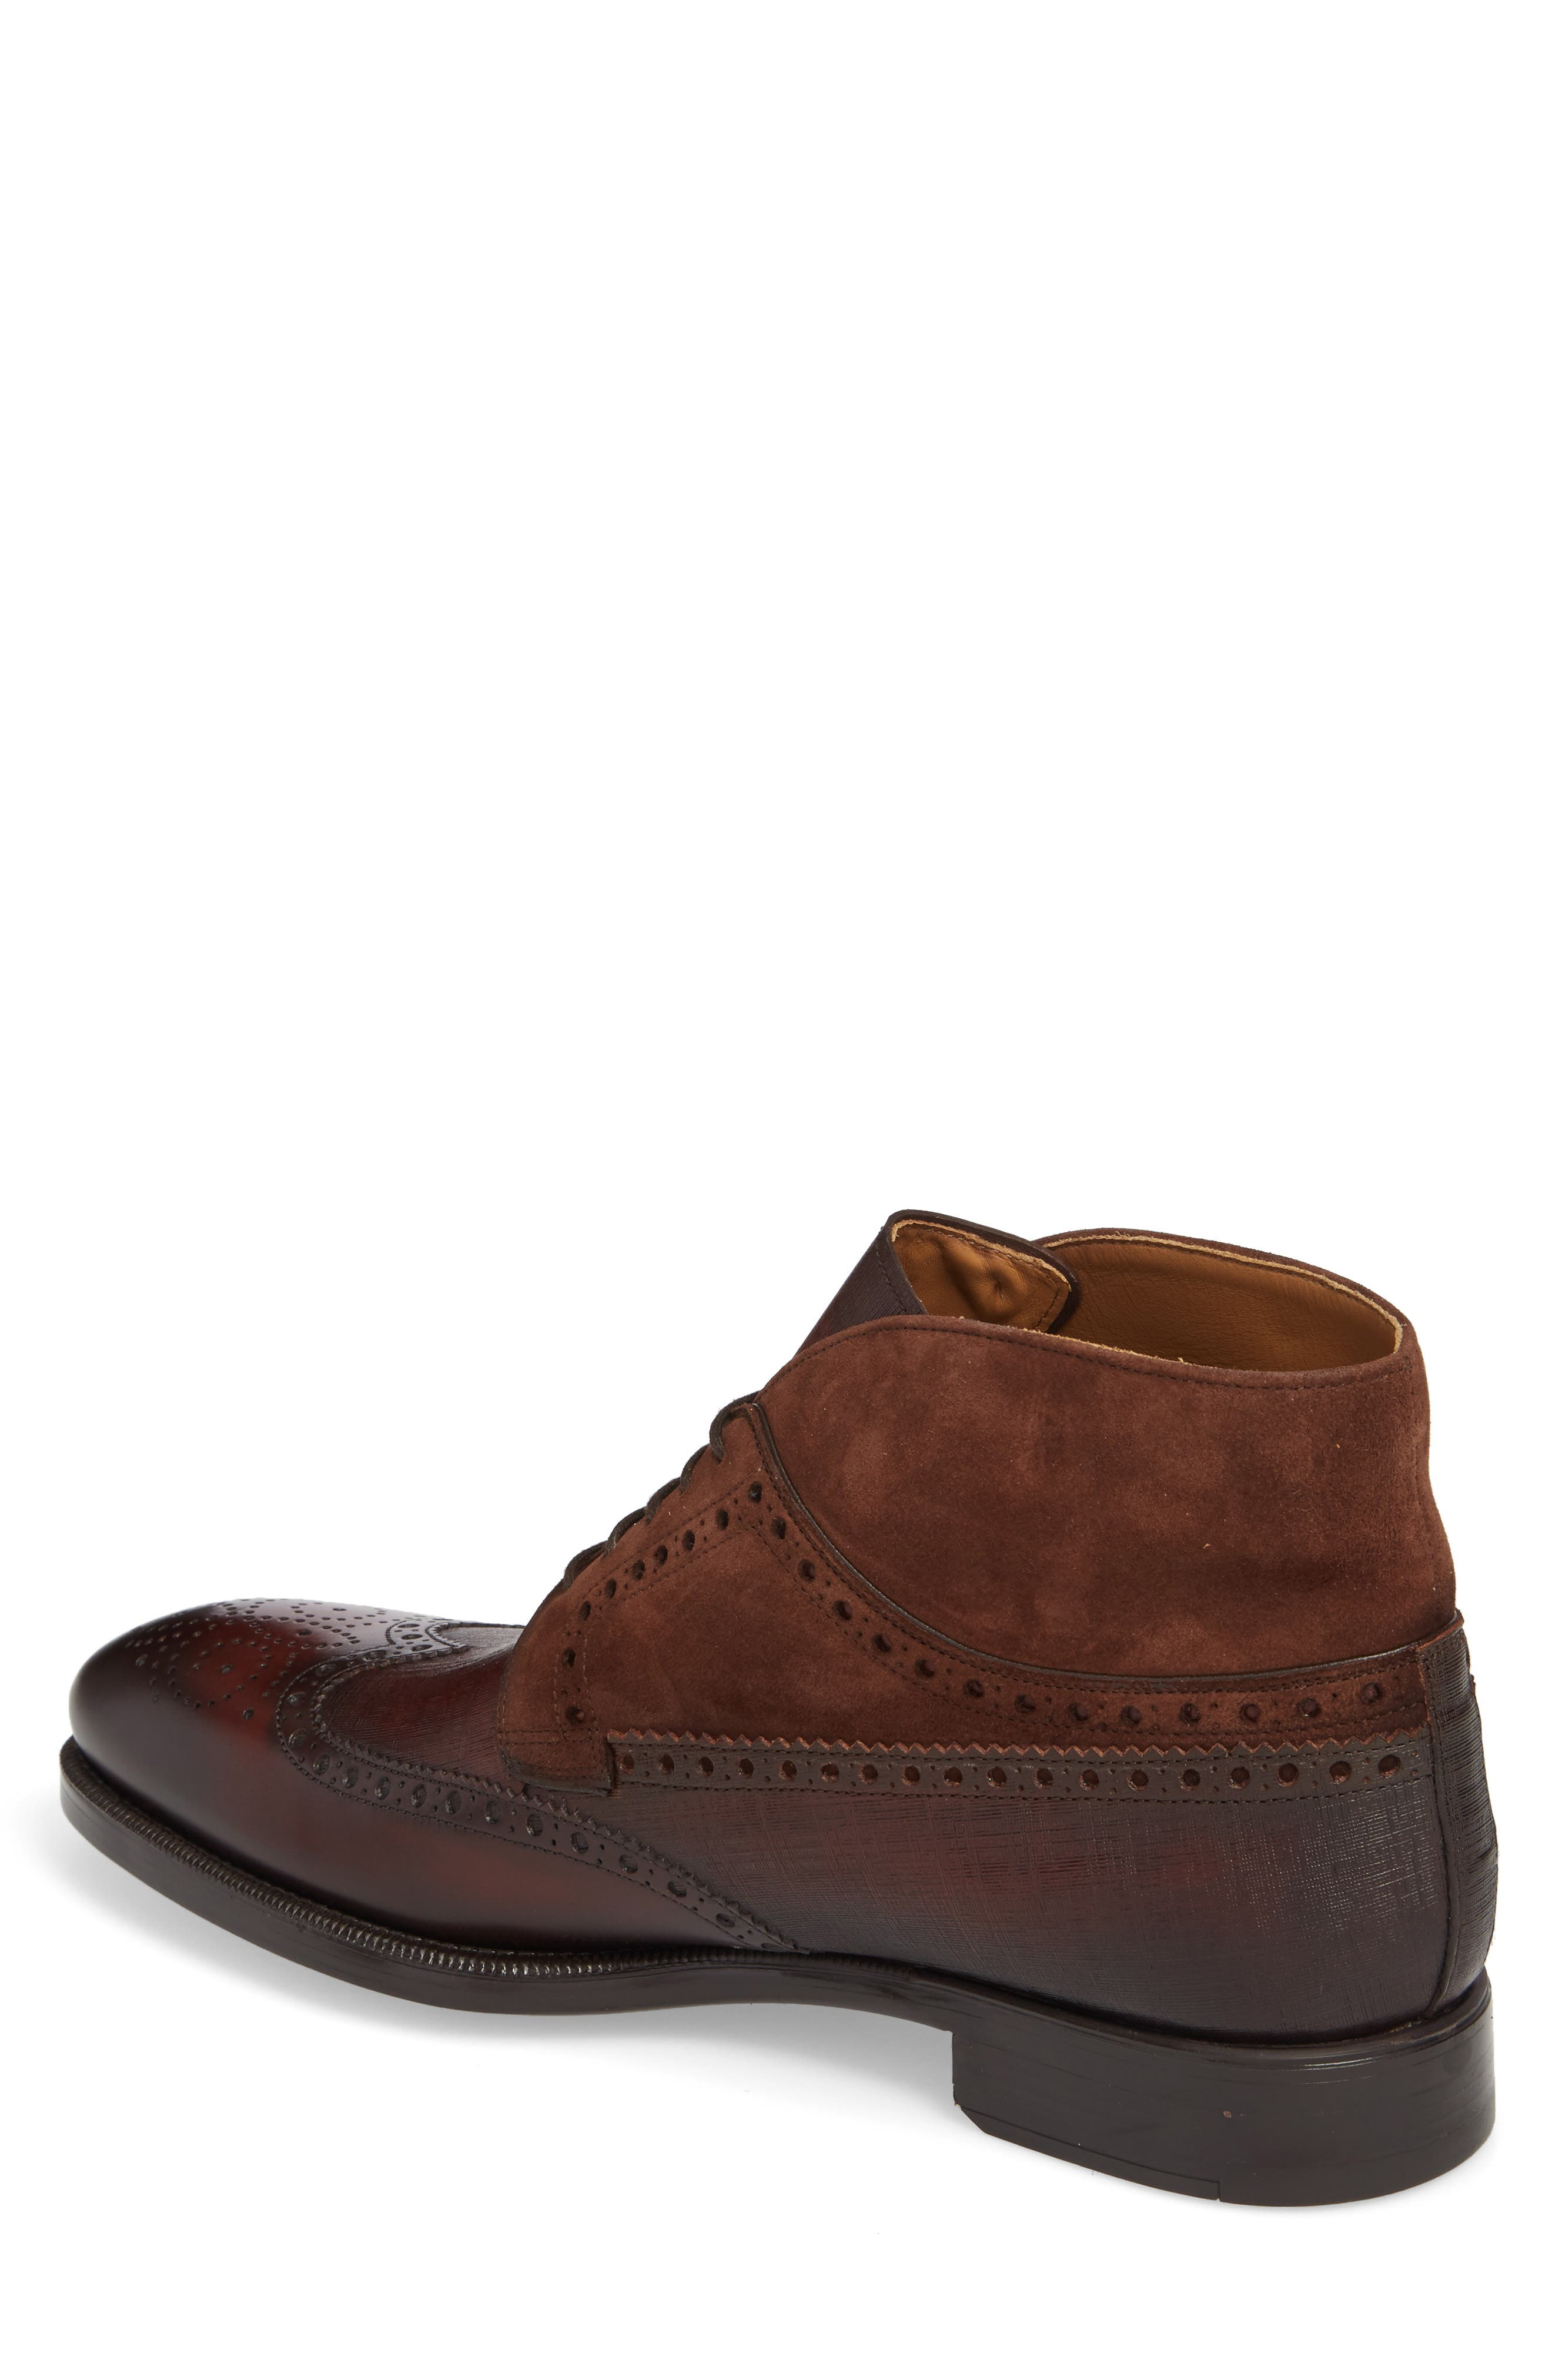 Saxon Wingtip Boot,                             Alternate thumbnail 2, color,                             Mid-Brown Leather